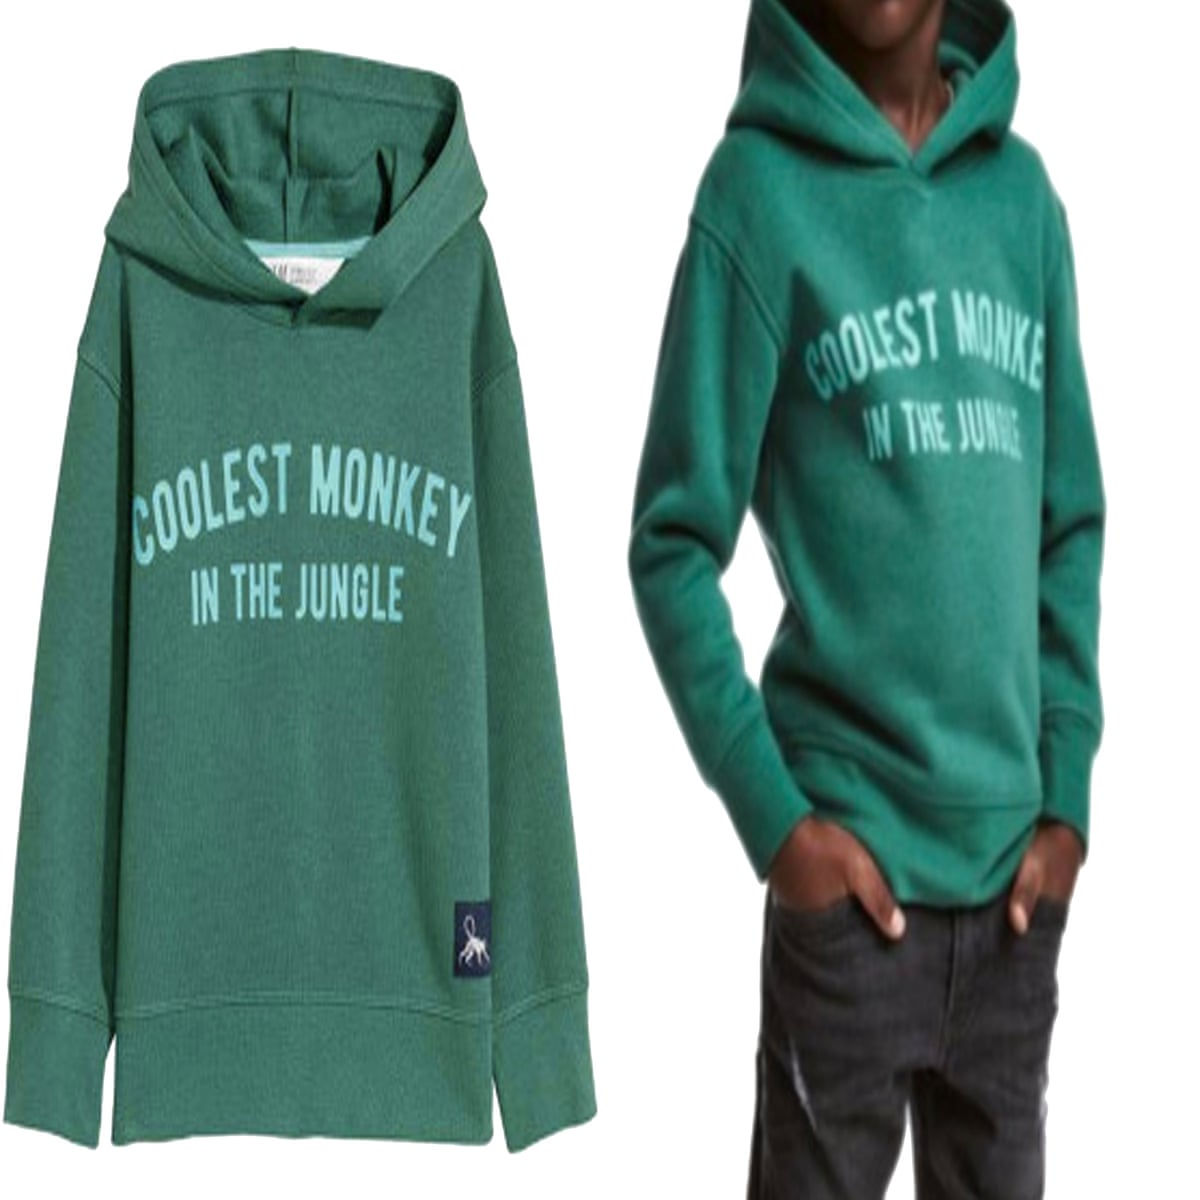 2956eb46830a H M apologises over image of black child in  monkey  hoodie ...